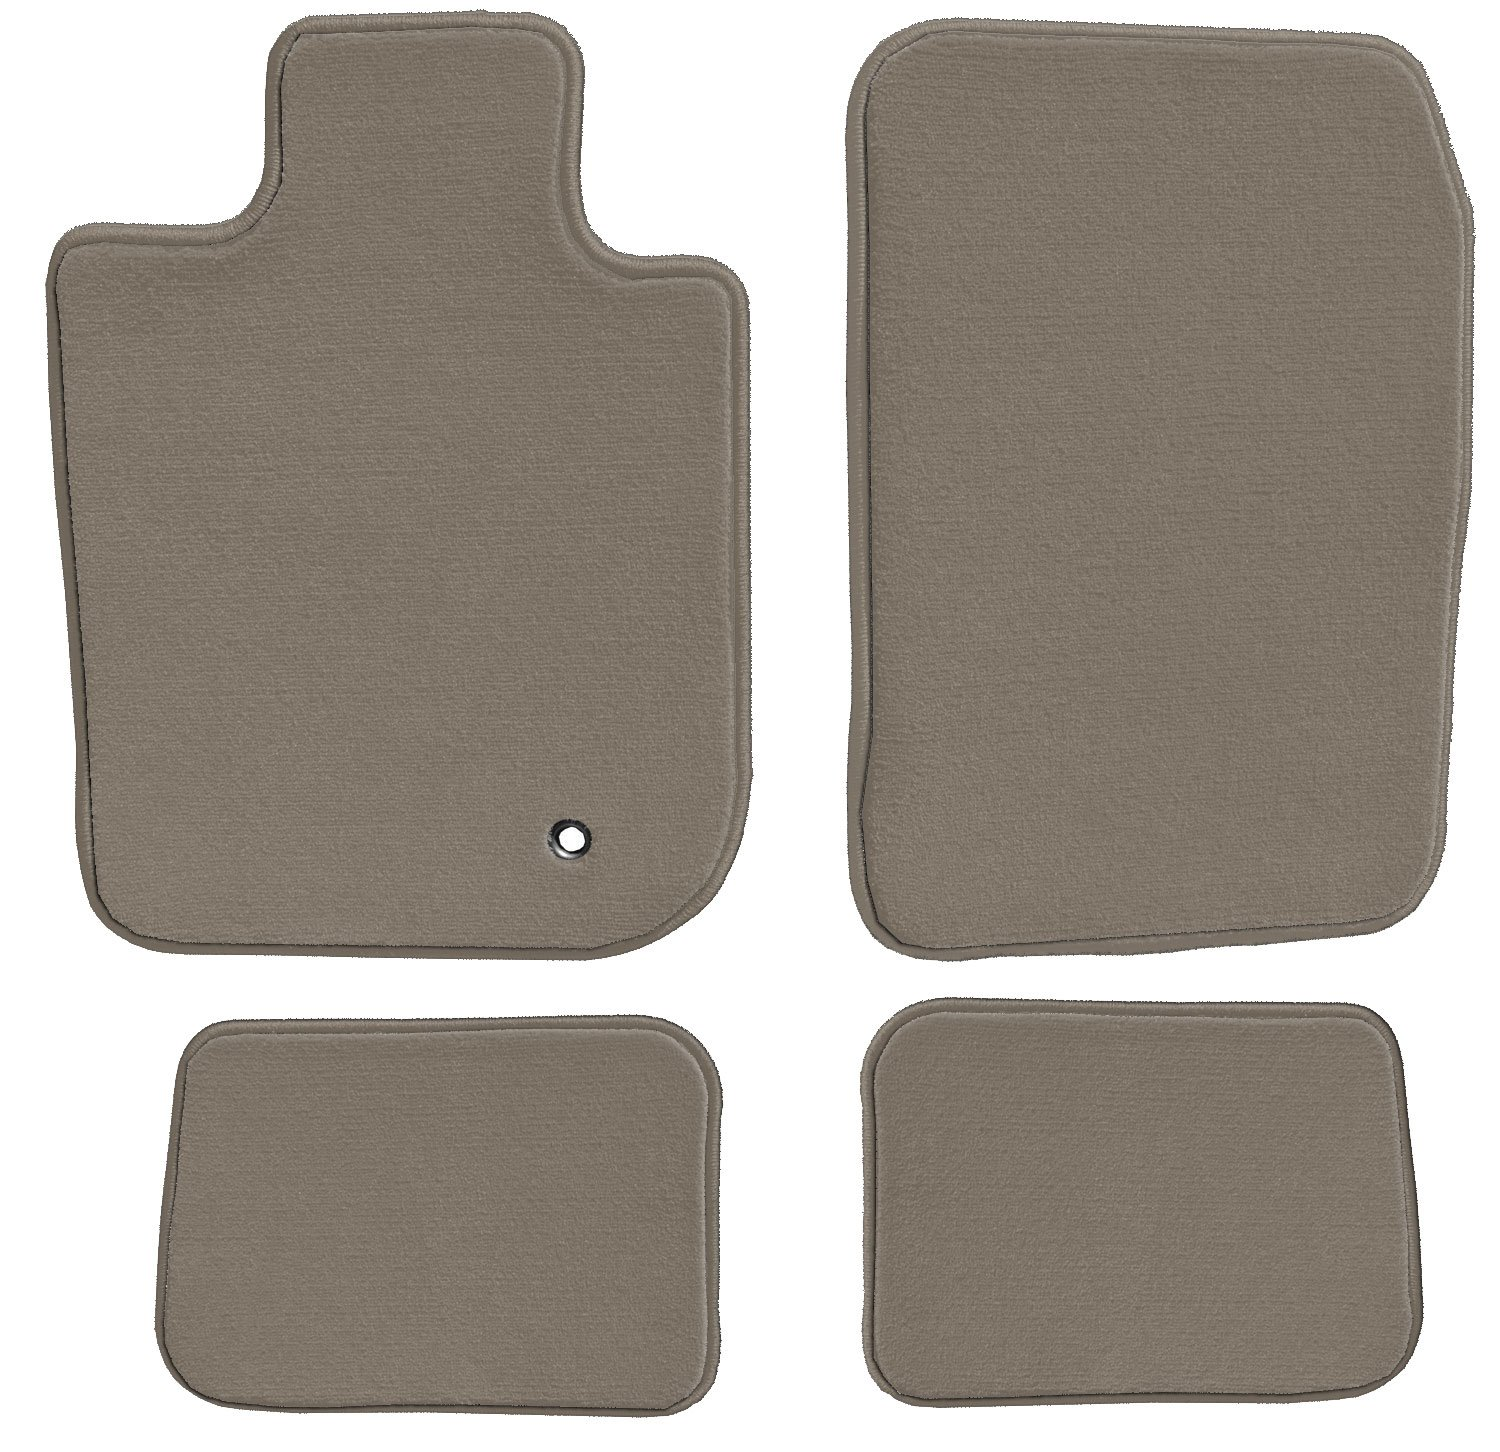 GGBAILEY D3989A-S1A-BG-LP Custom Fit Automotive Carpet Floor Mats for 1999 2002 Saab 9-3 Hatchback Beige Loop Driver 2001 2000 Passenger /& Rear